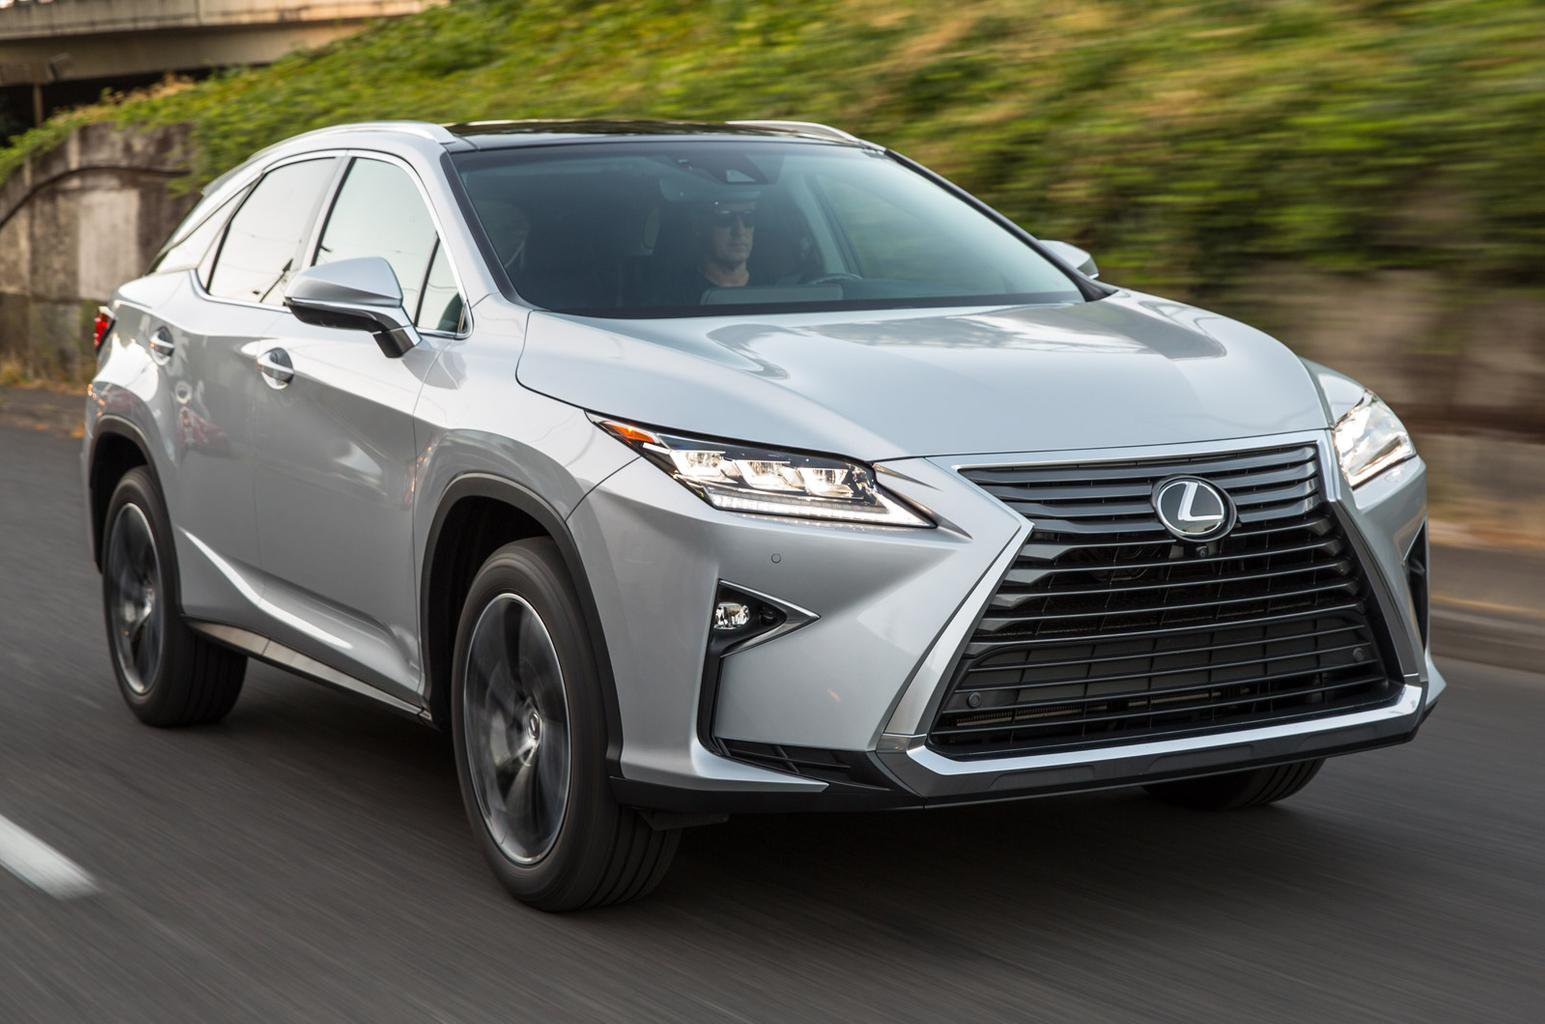 2015 Lexus RX 200t review